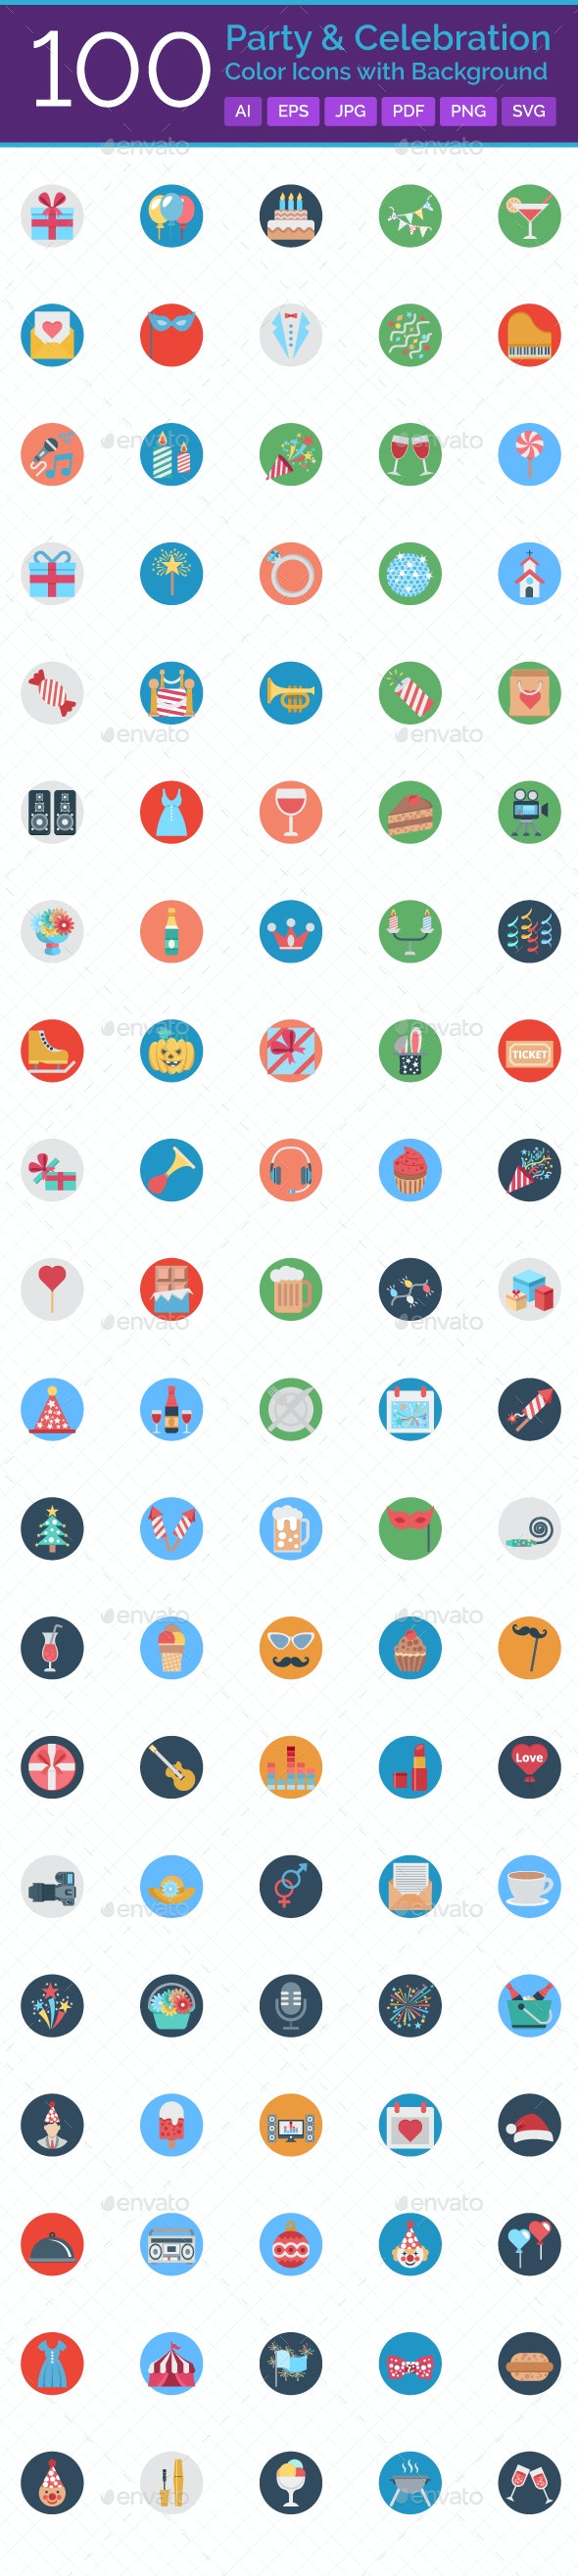 100 Party and Celebration Color Icons with Background - Icons